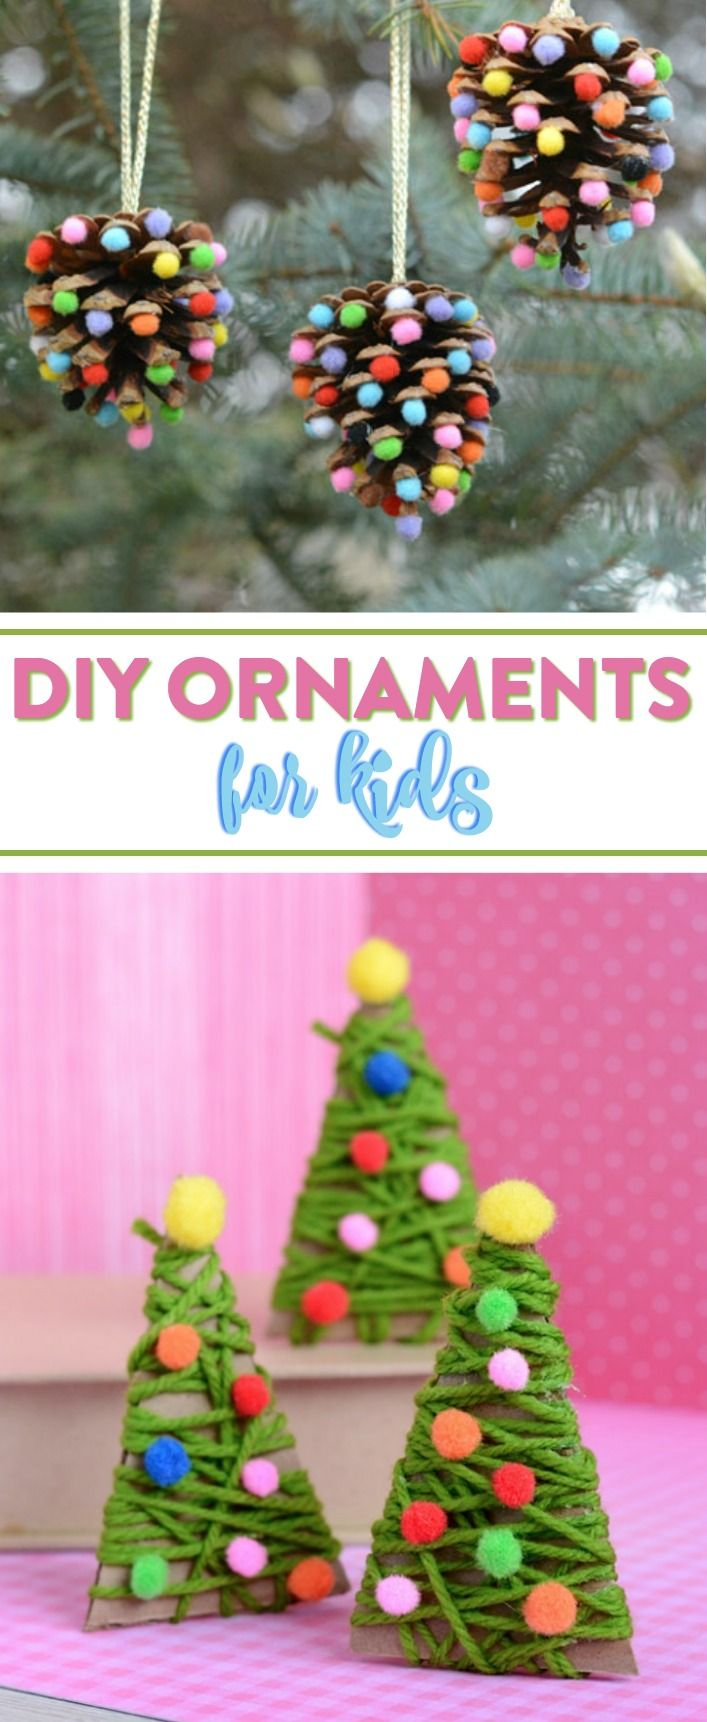 DIY Craft: Today I'm going to show you these wonderfulDIY Christmas Ornament Crafts for Kids perfect to have them make to display on your tree.